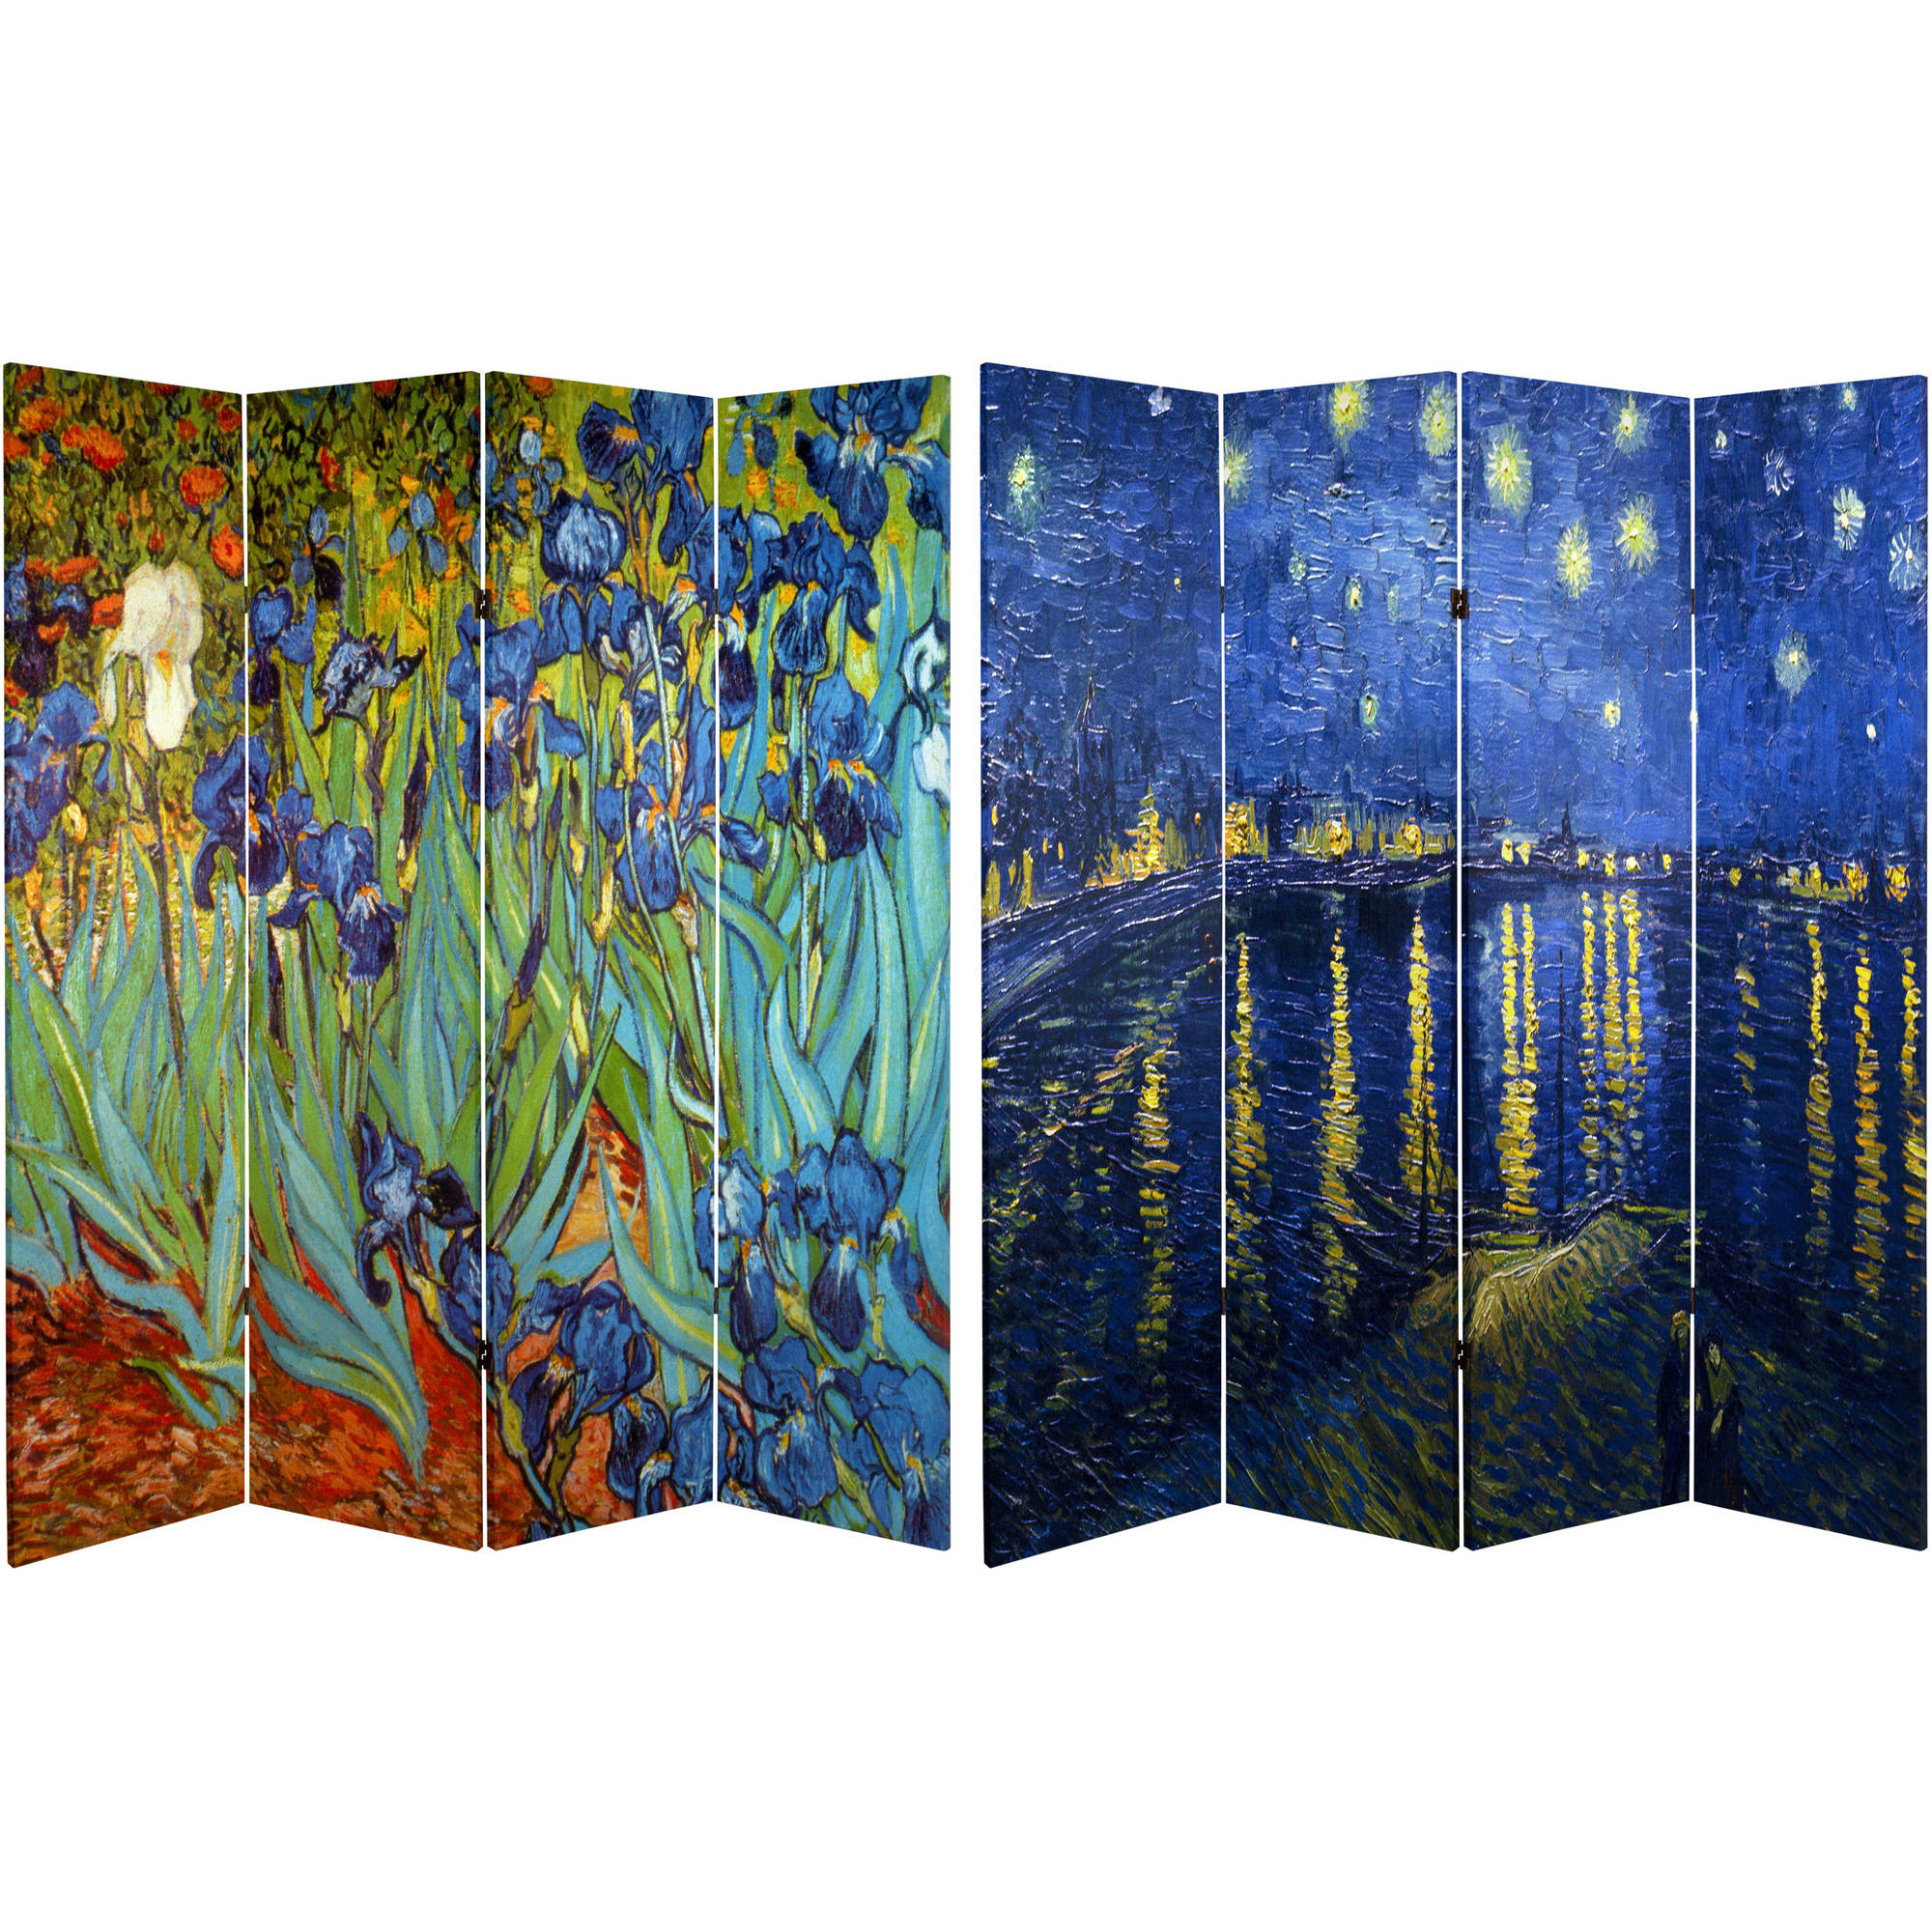 6u0027 tall double sided works of van gogh canvas room divider